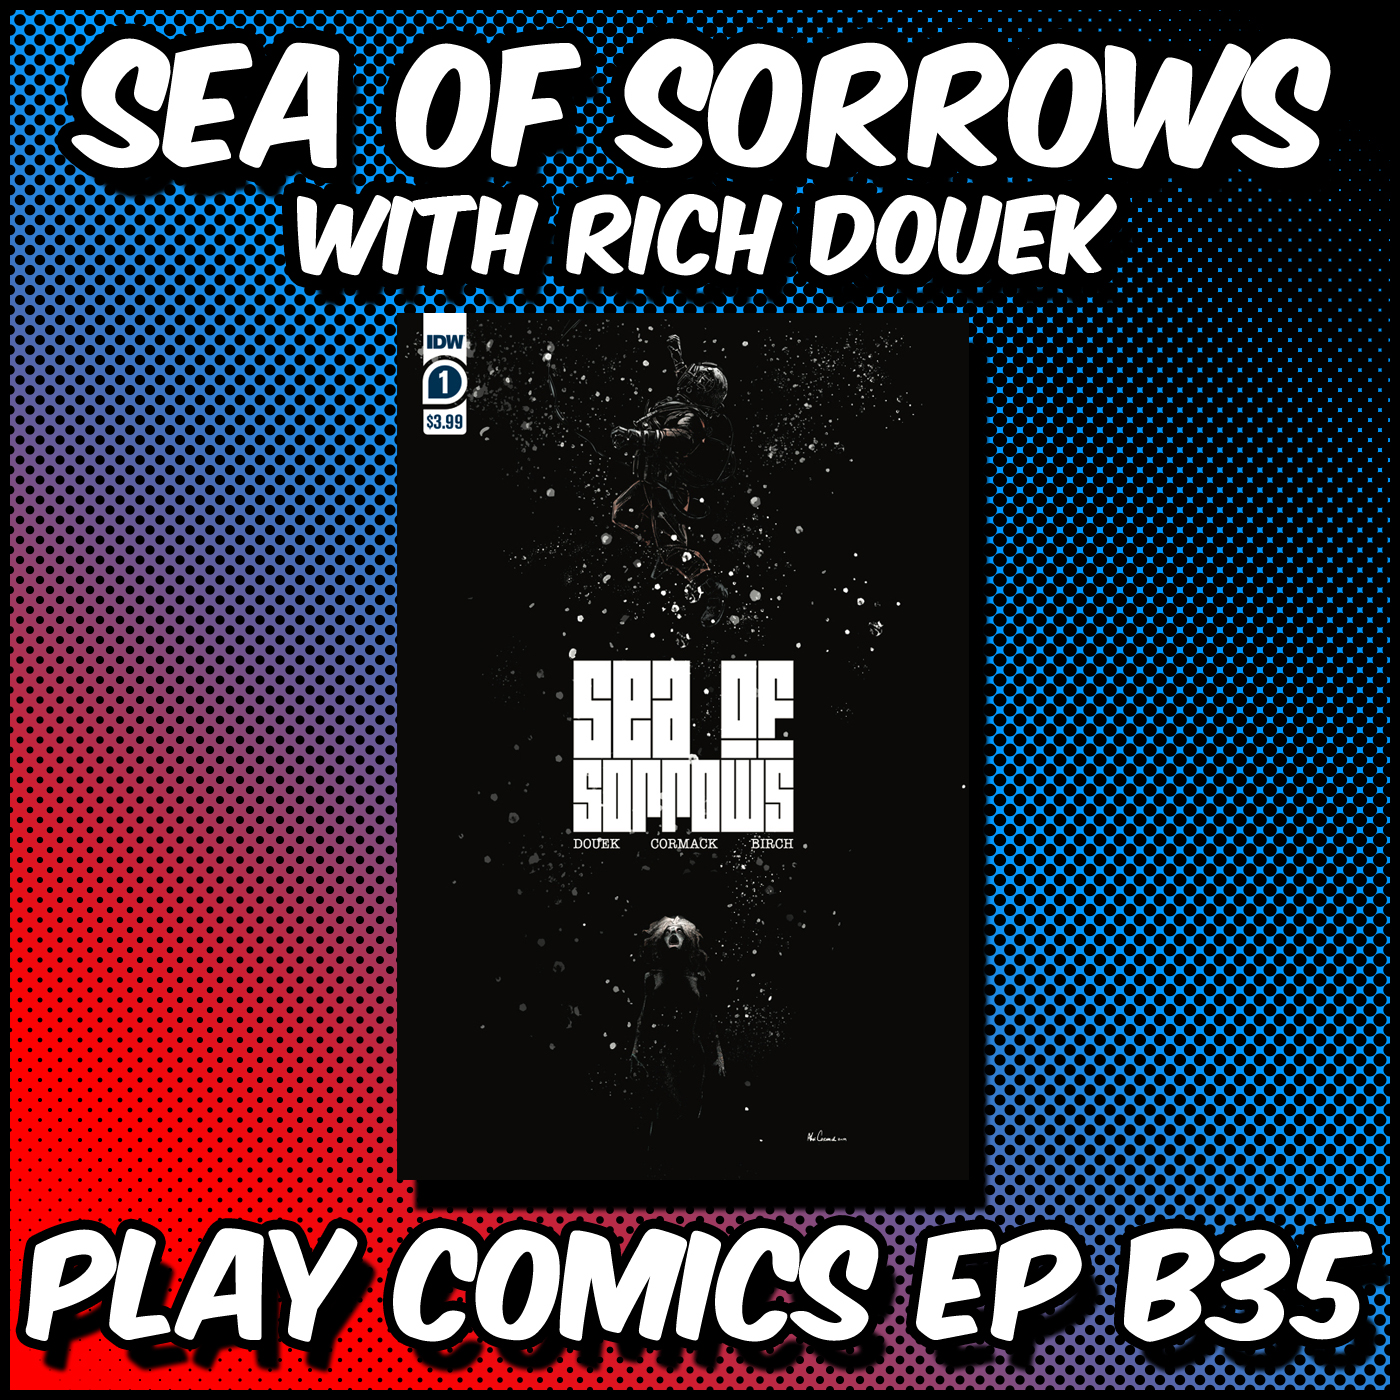 Sea of Sorrows with Rich Douek